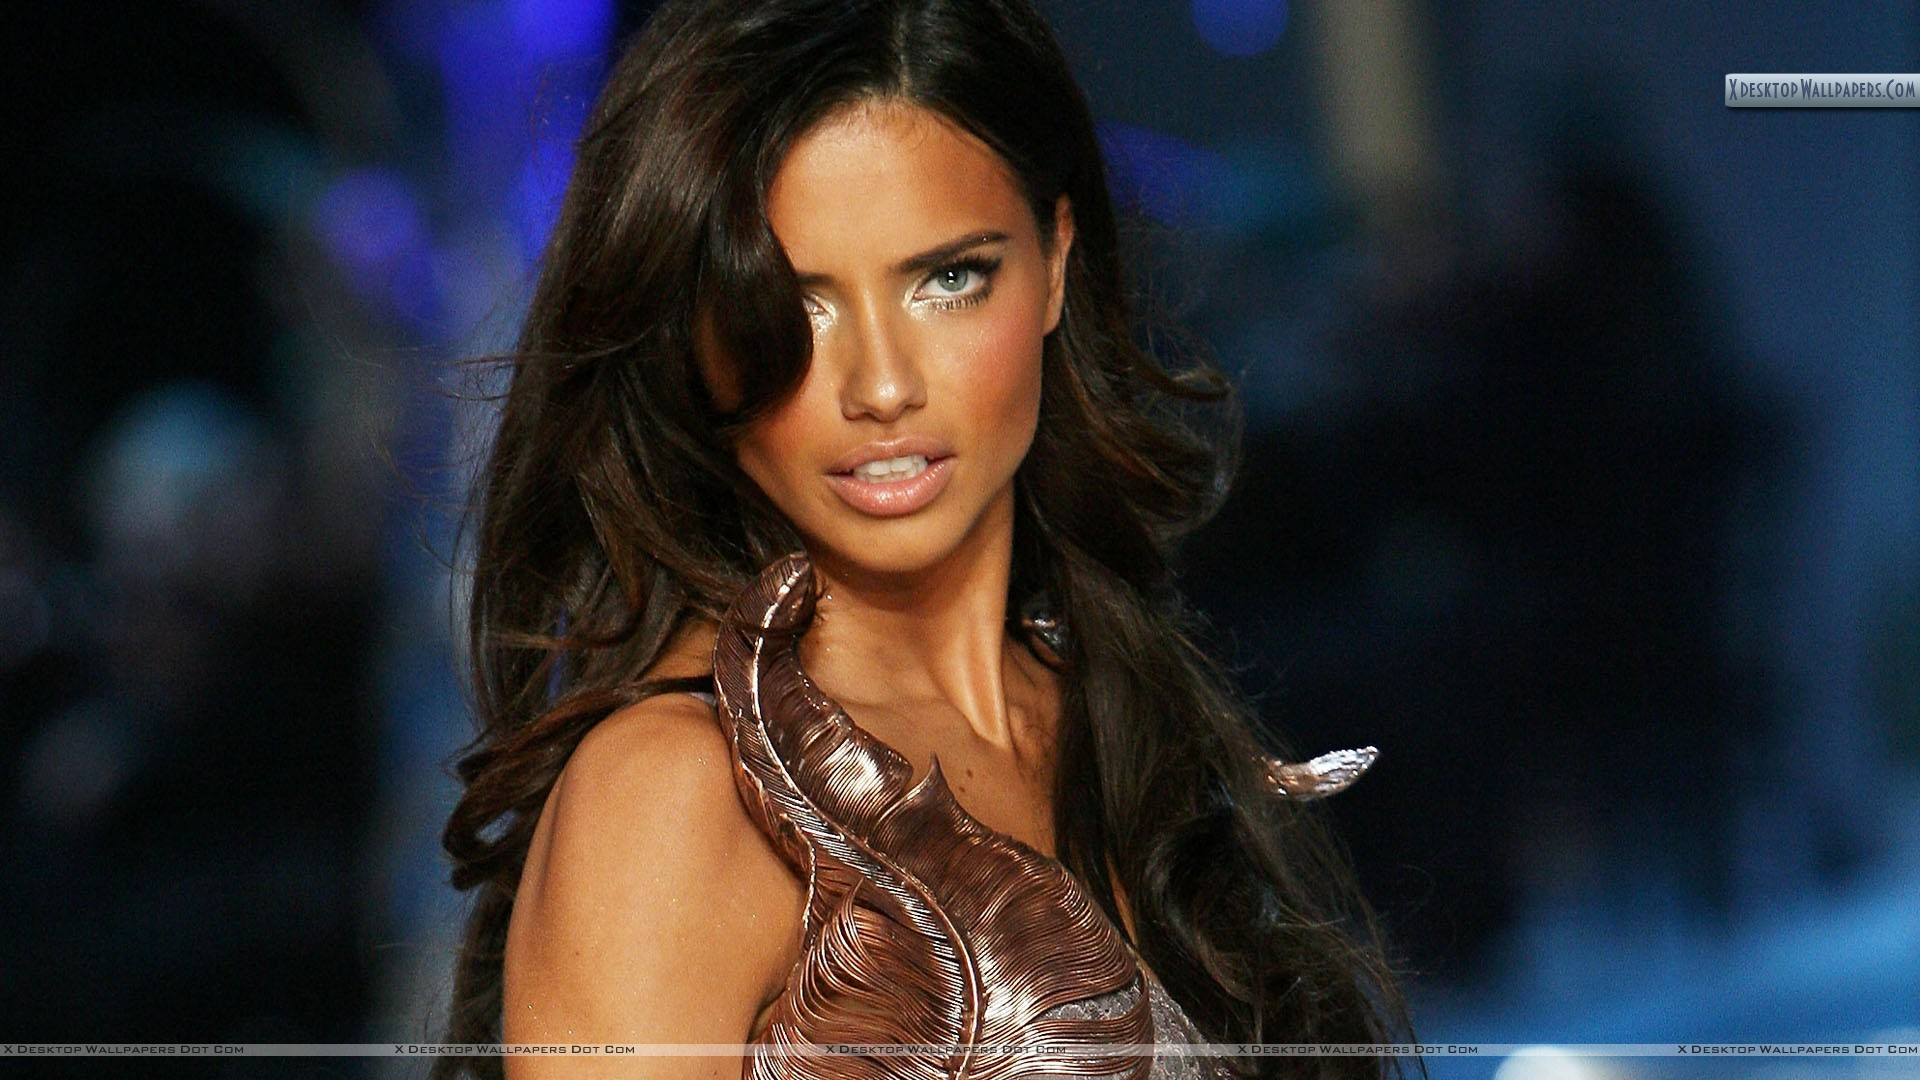 Adriana lima blue eyes side face pose wallpaper you are viewing wallpaper titled adriana lima voltagebd Images